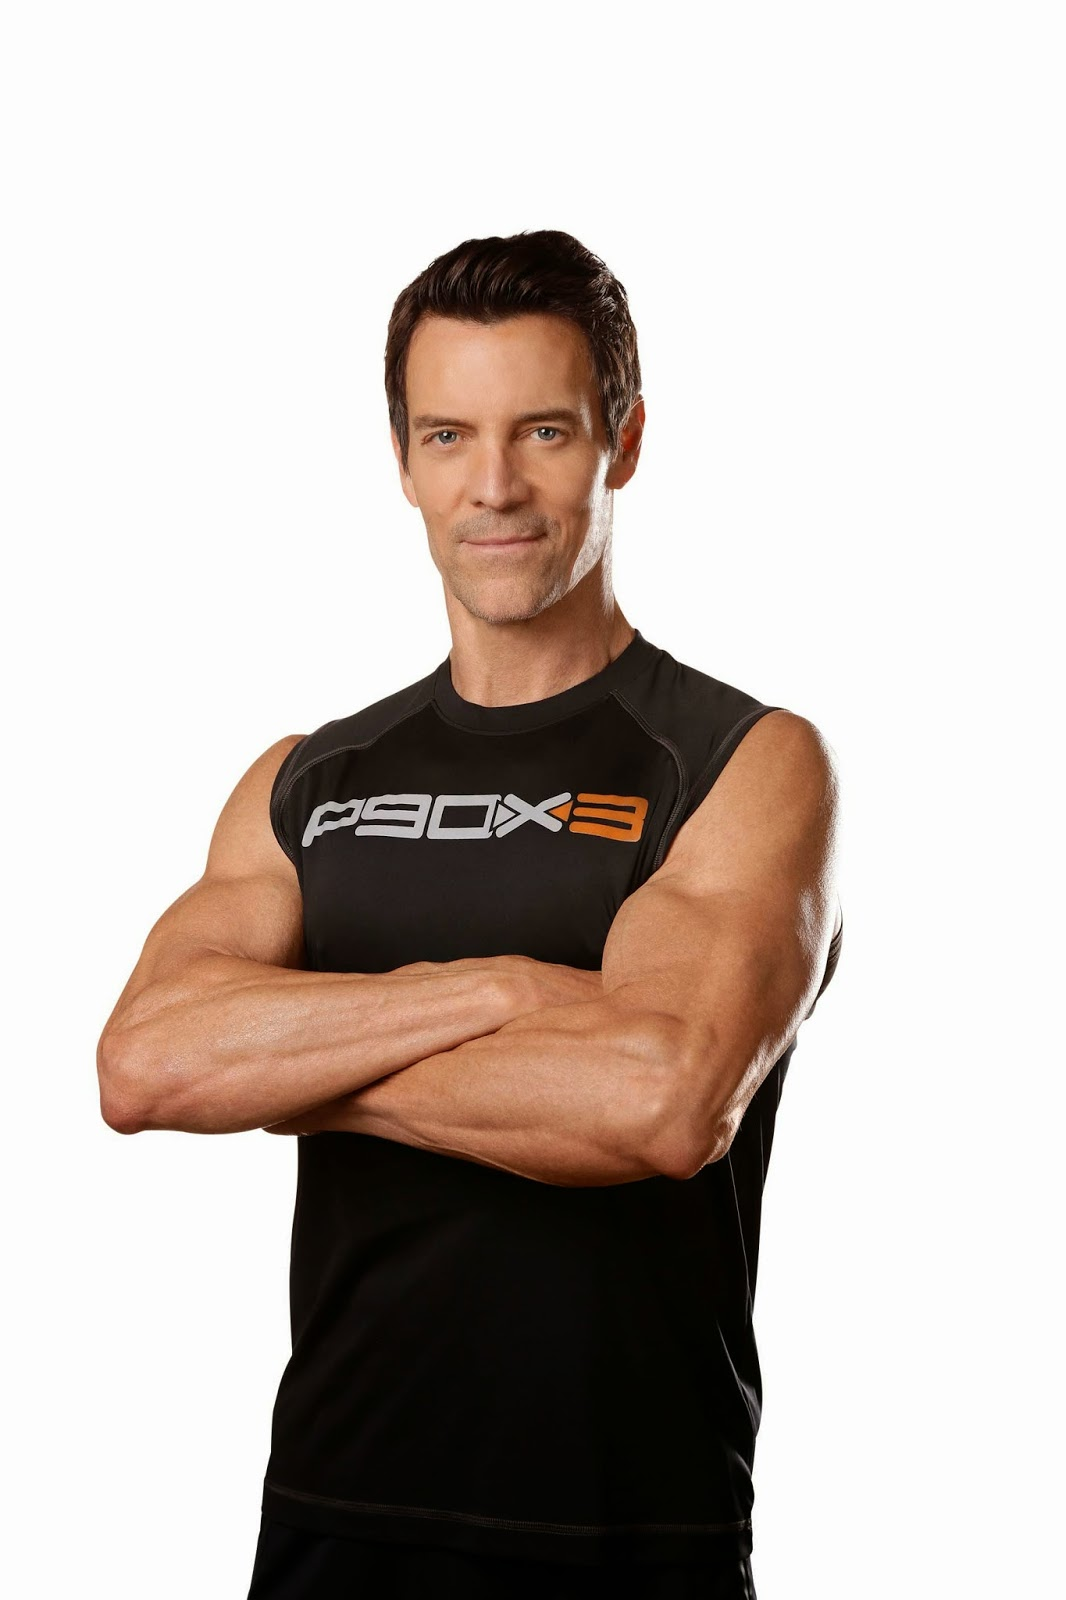 2 By 22 P90x3 Results